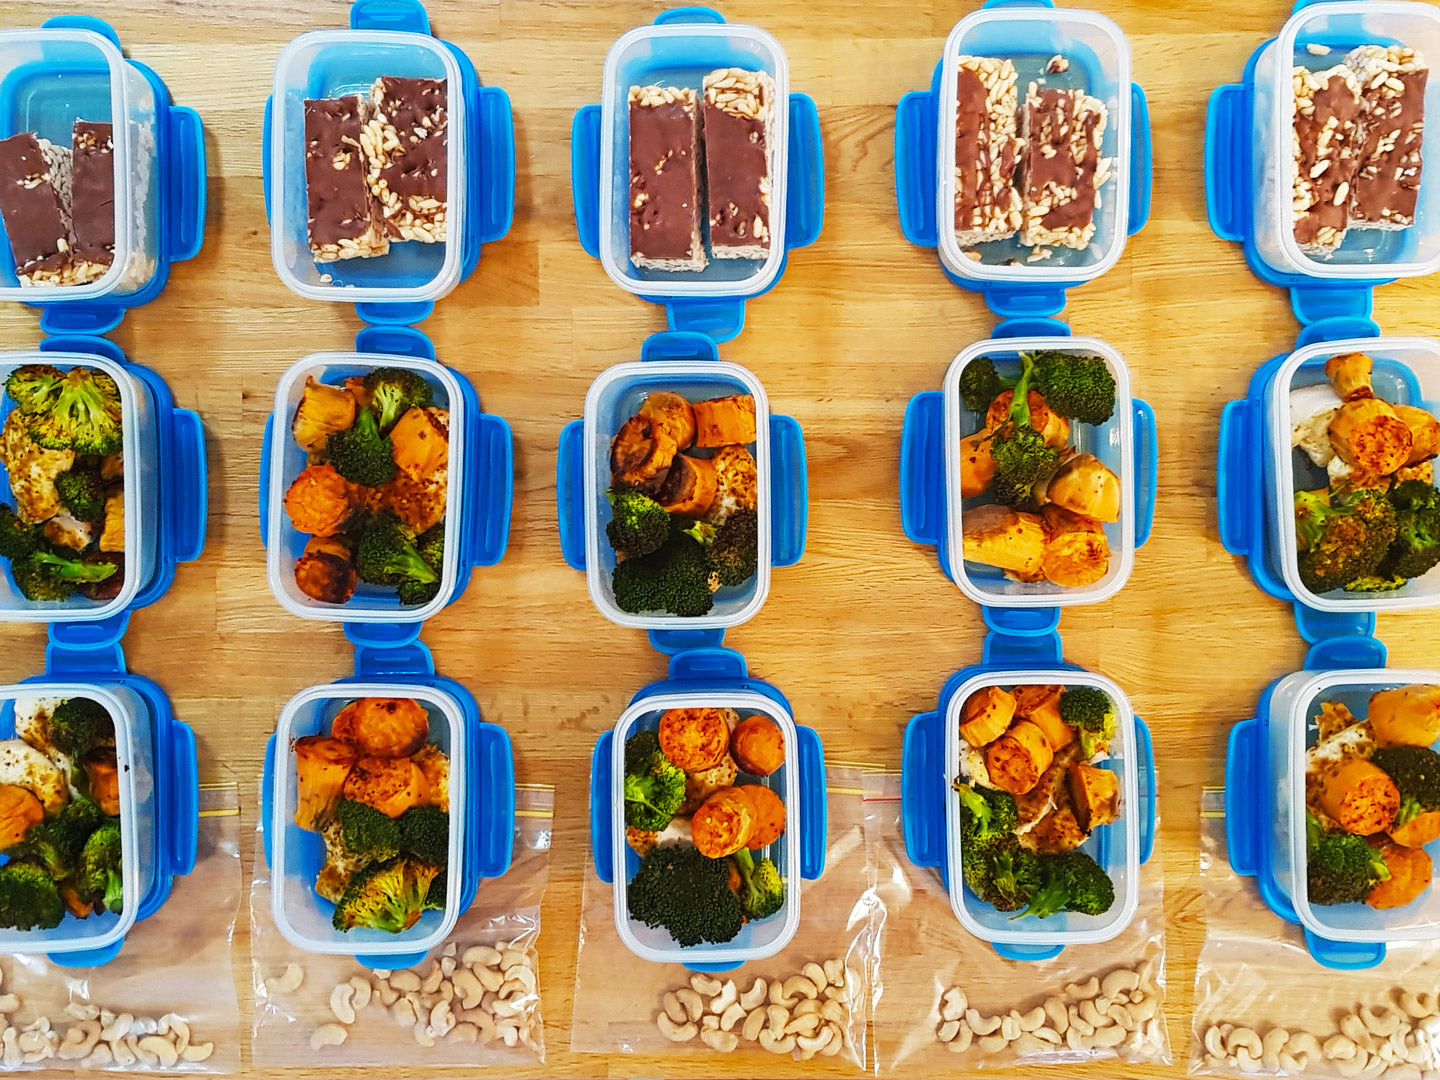 Meal Prep Sunday - 26th August 2018 - 1800 Calories & 6 Meals Per Day